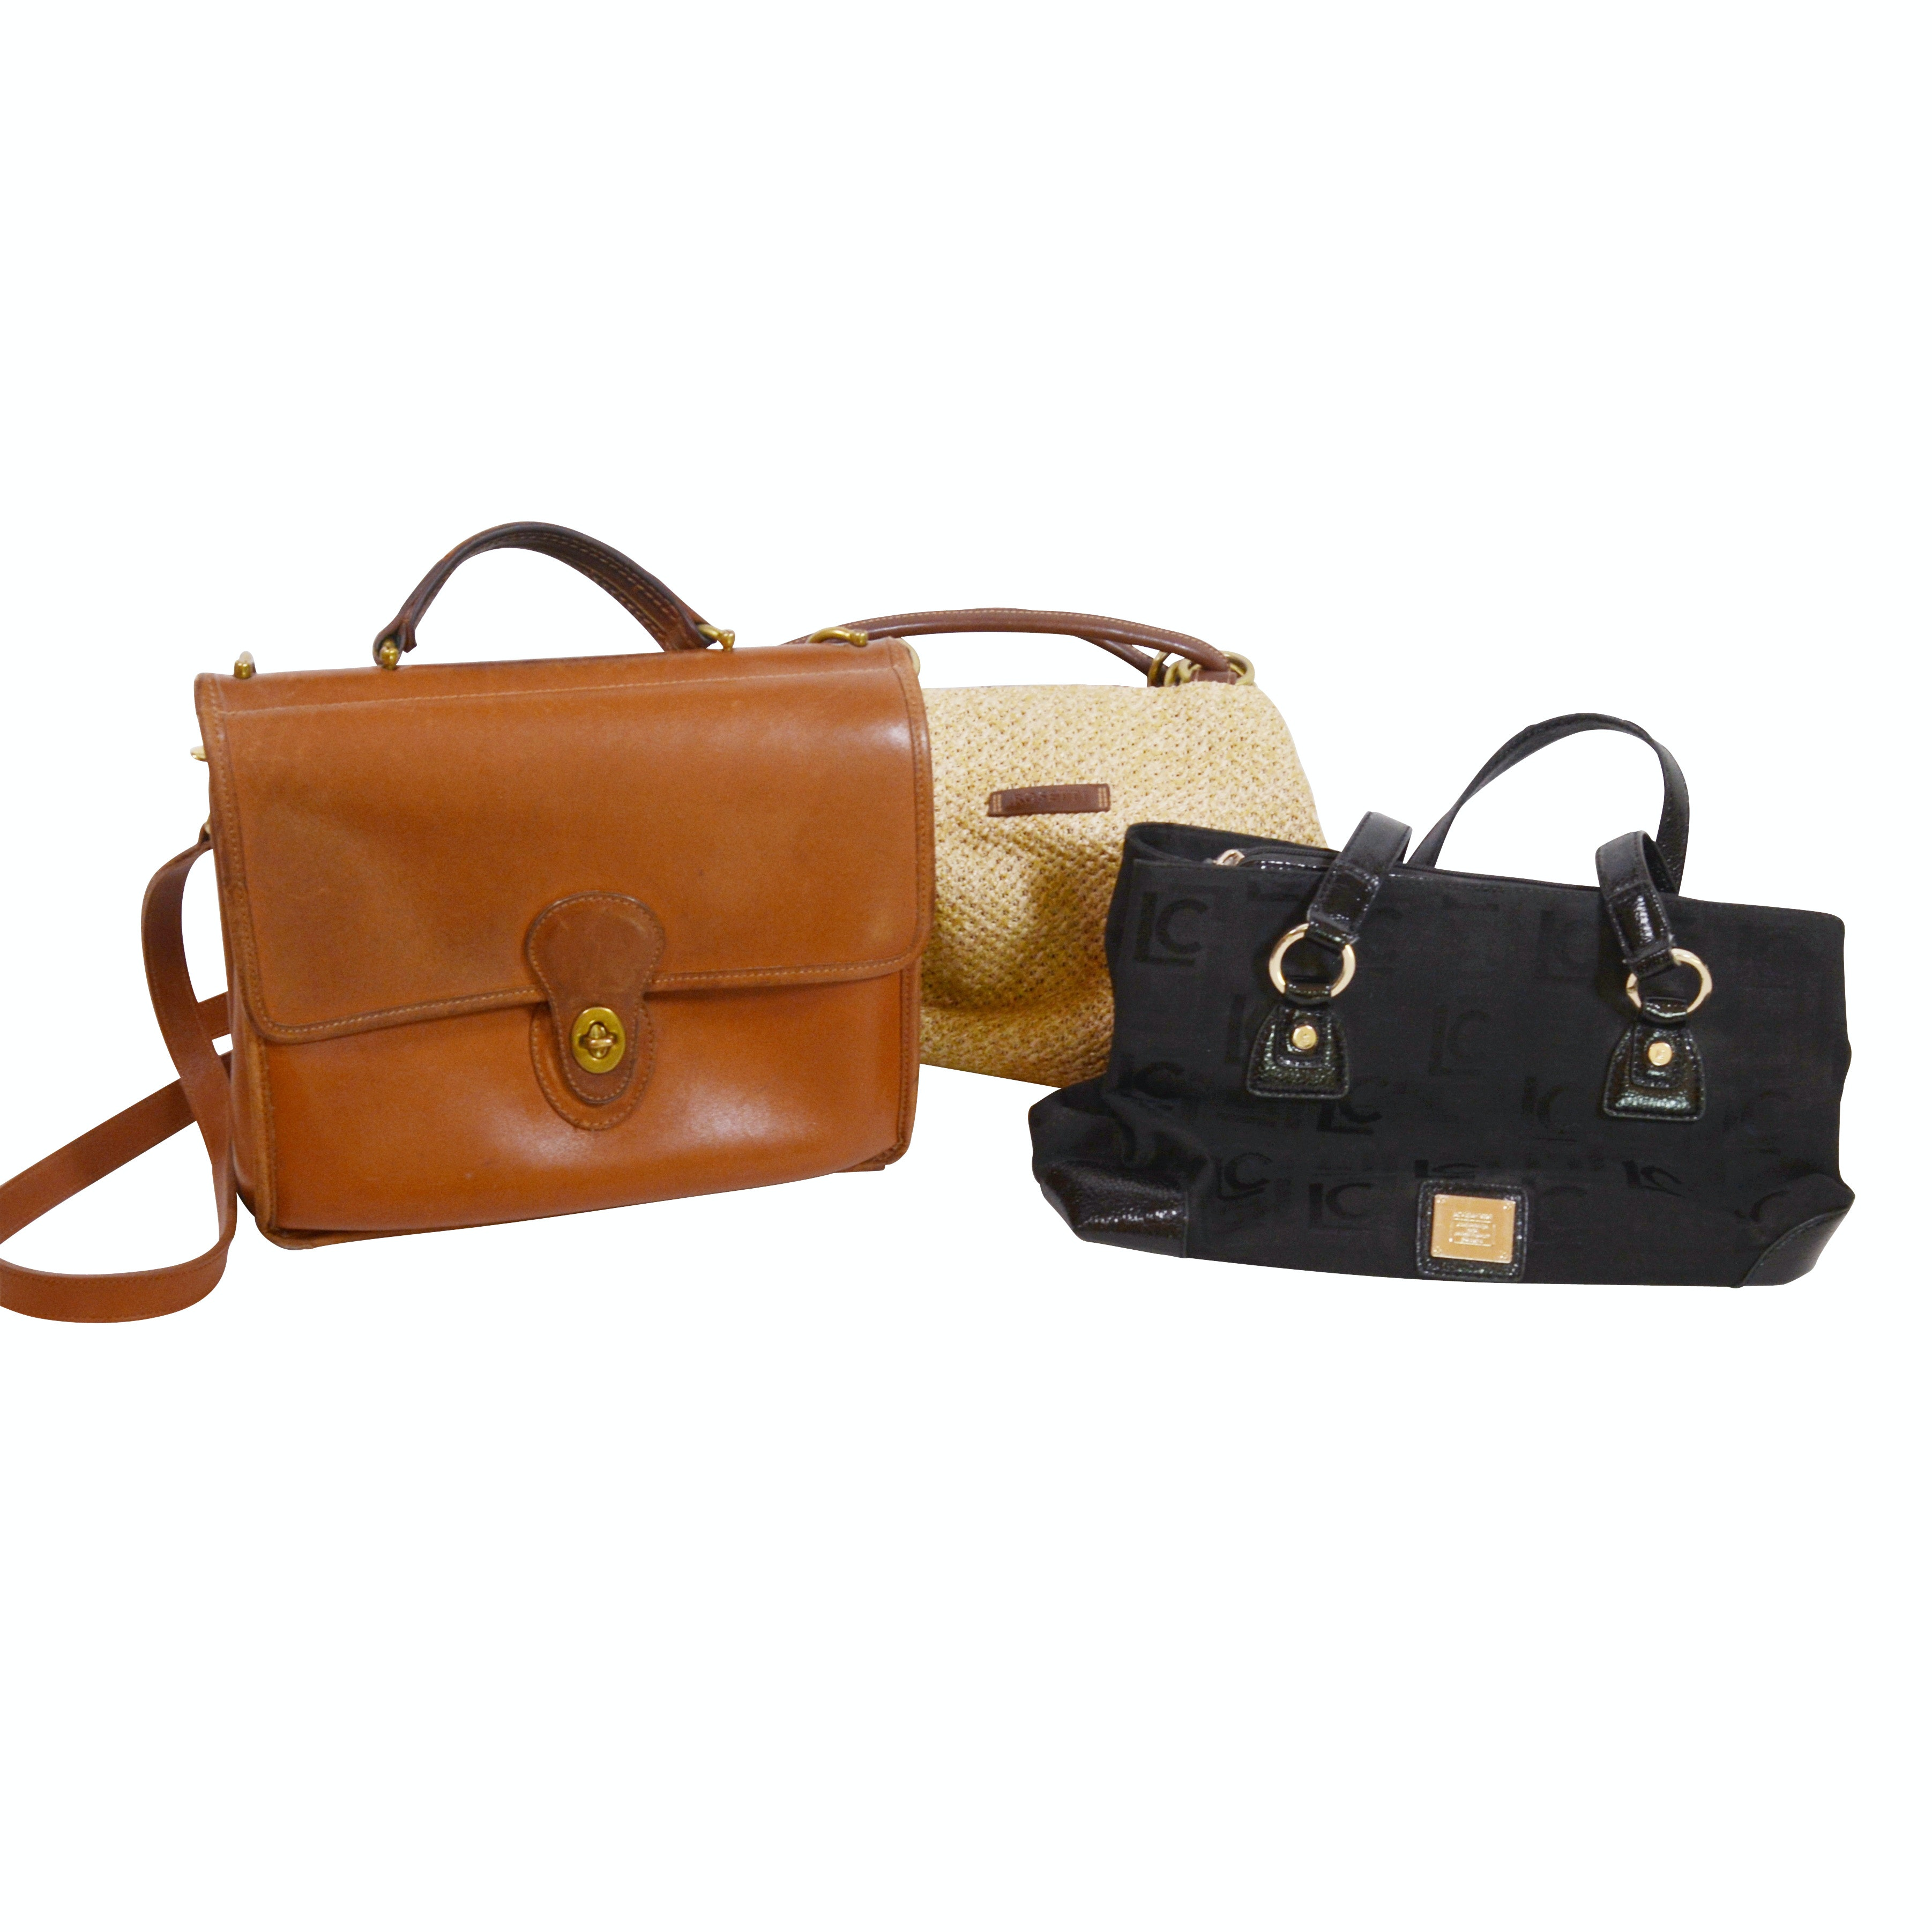 Vintage Coach Willis Leather Satchel Bag and Other Handbags